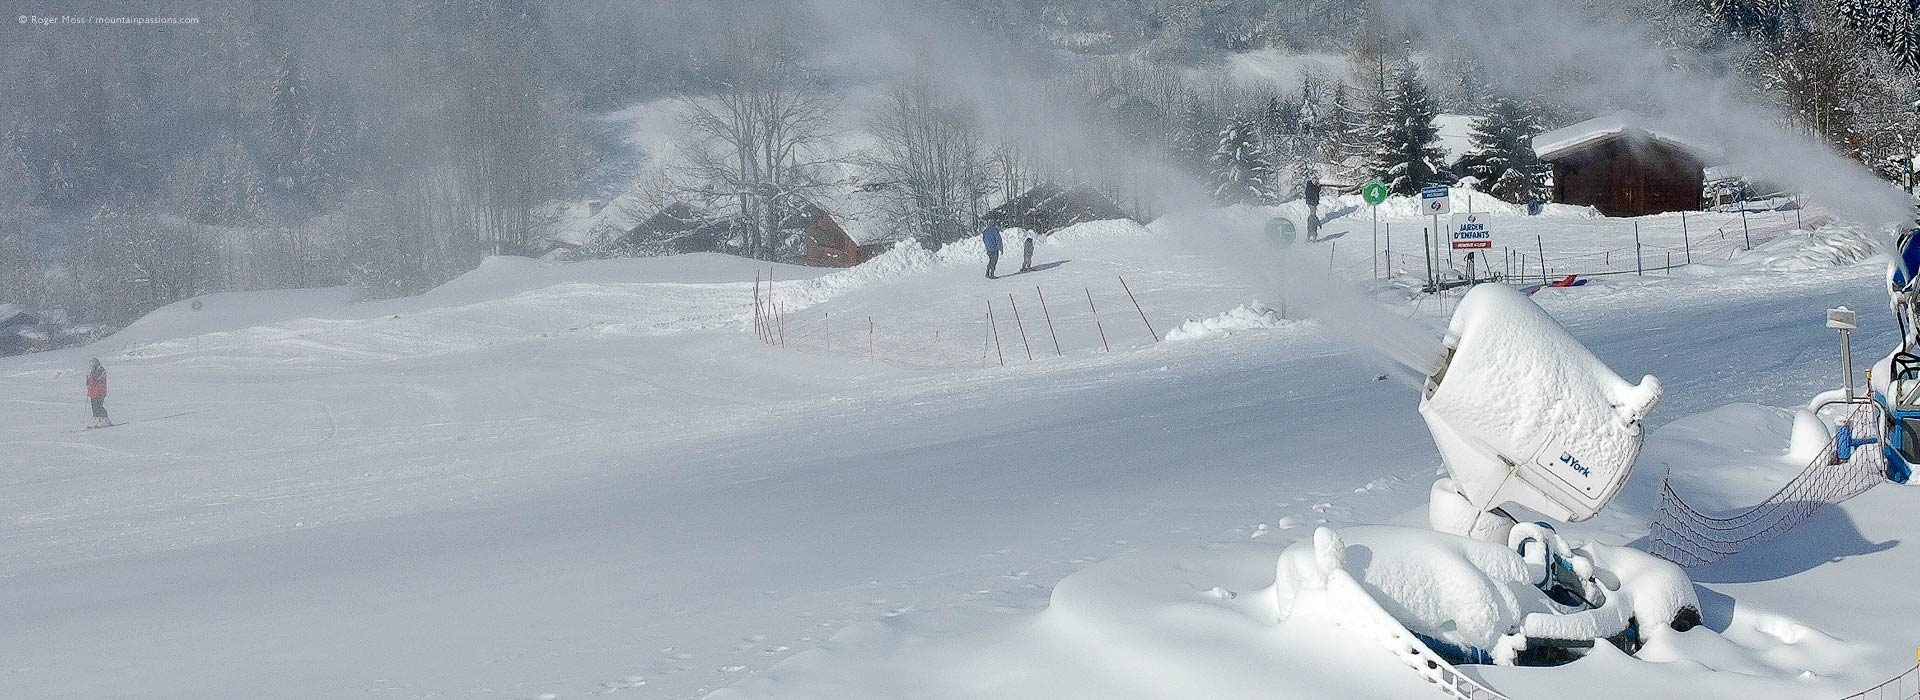 Artificial snowmaking beside ski piste at Sixte-Fer-A-Cheval, Grand Massif ski area, French Alps.